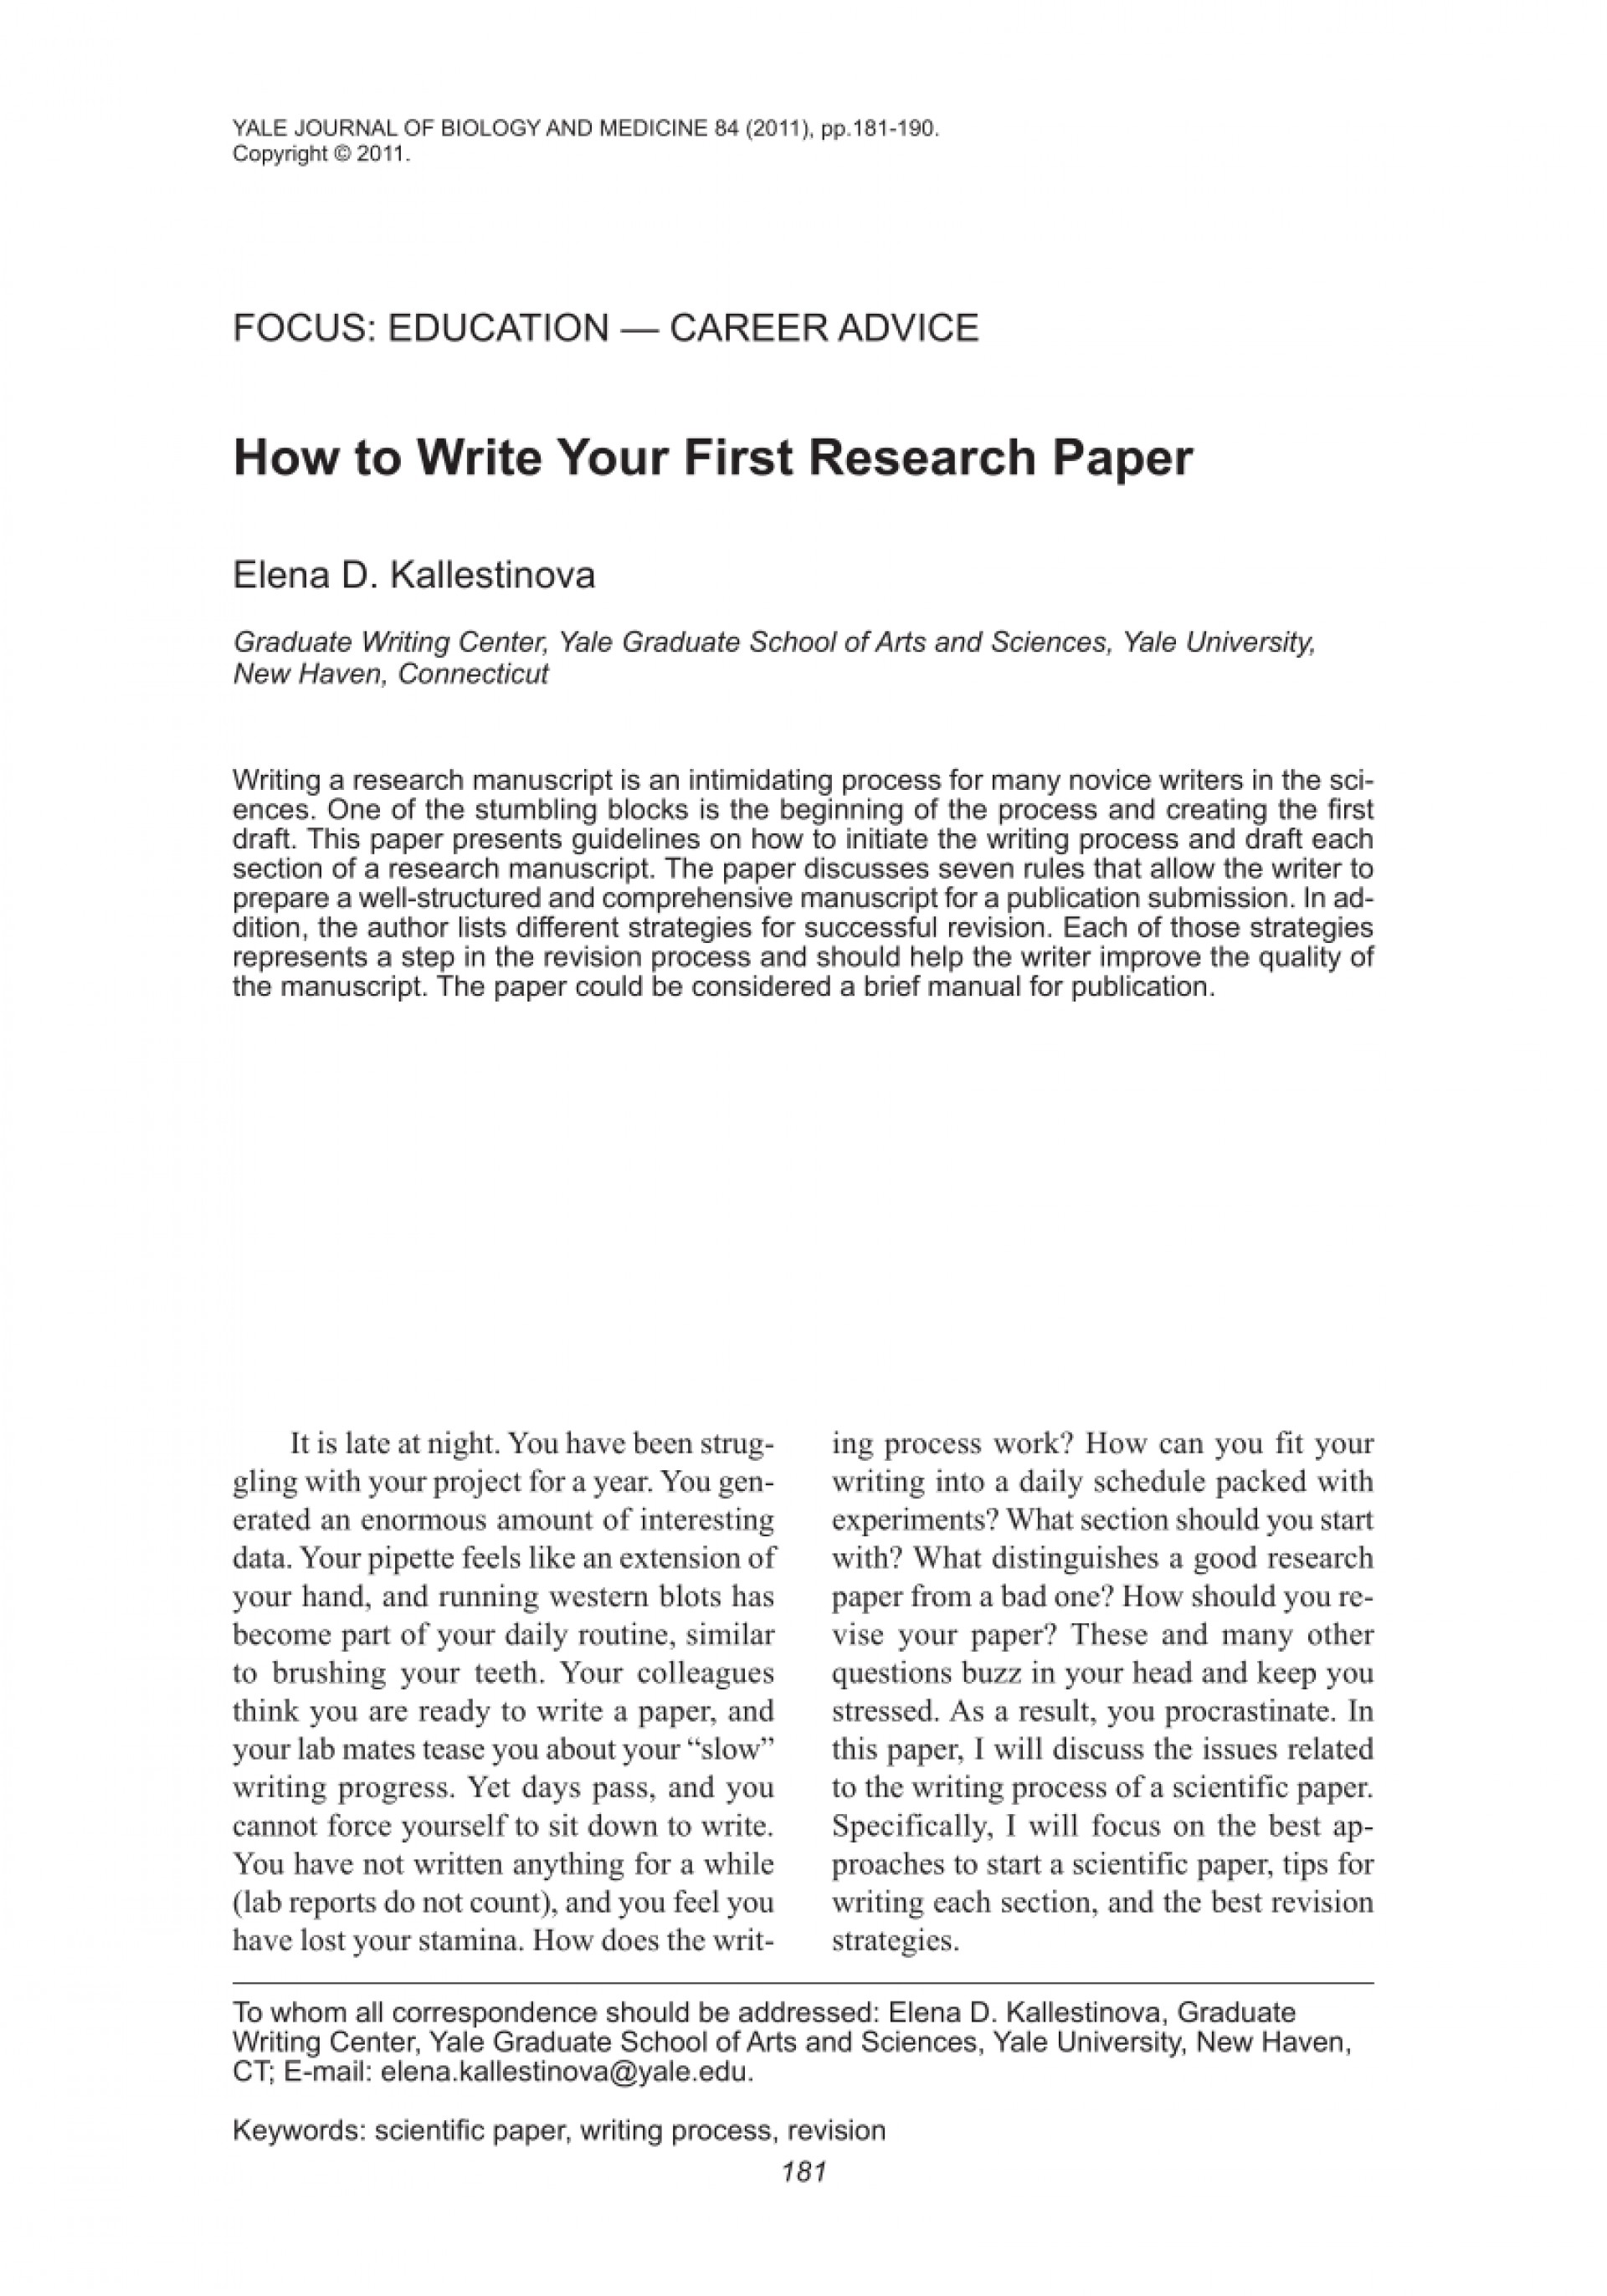 022 Research Paper About Writing Rare Essay On Process Topics For College 1920